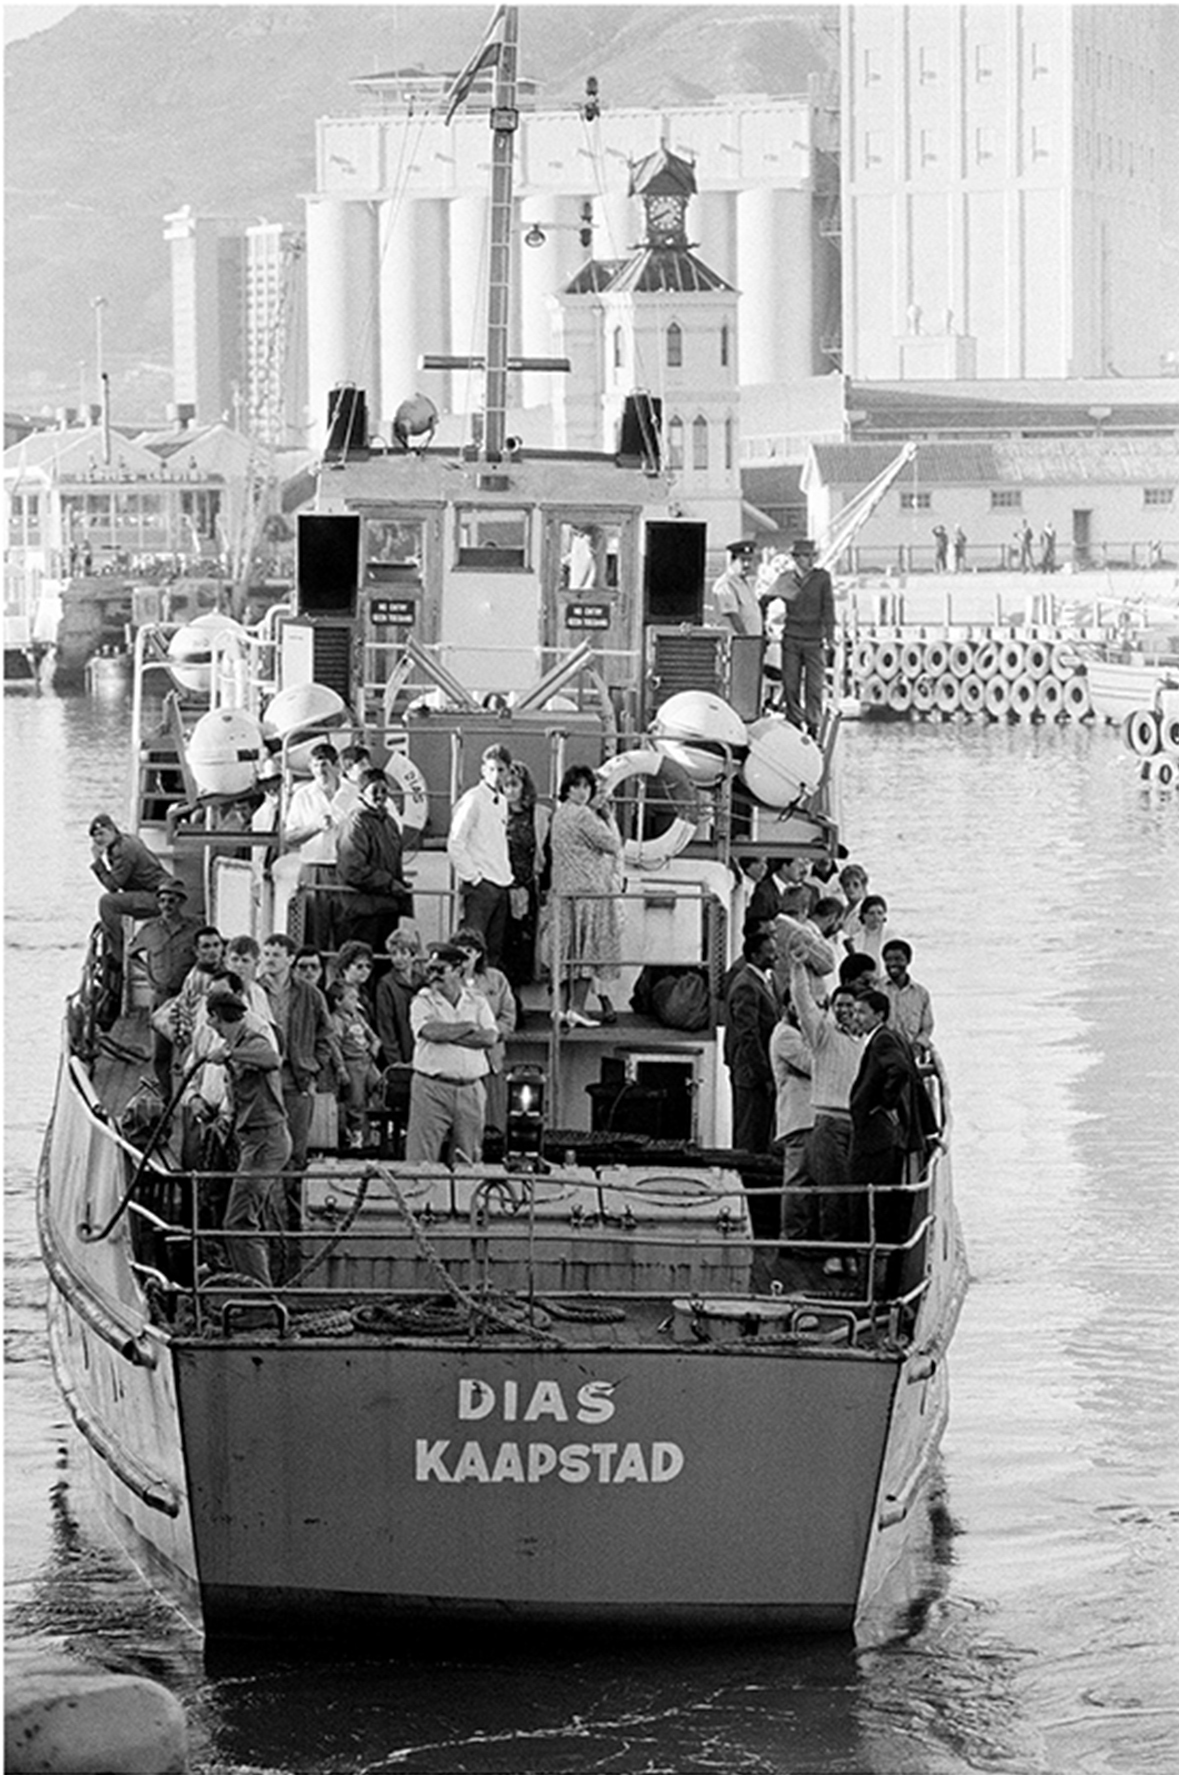 Accompanied by prison personnel, political prisoners on their release from Robben Island prison, in Cape Town Harbour